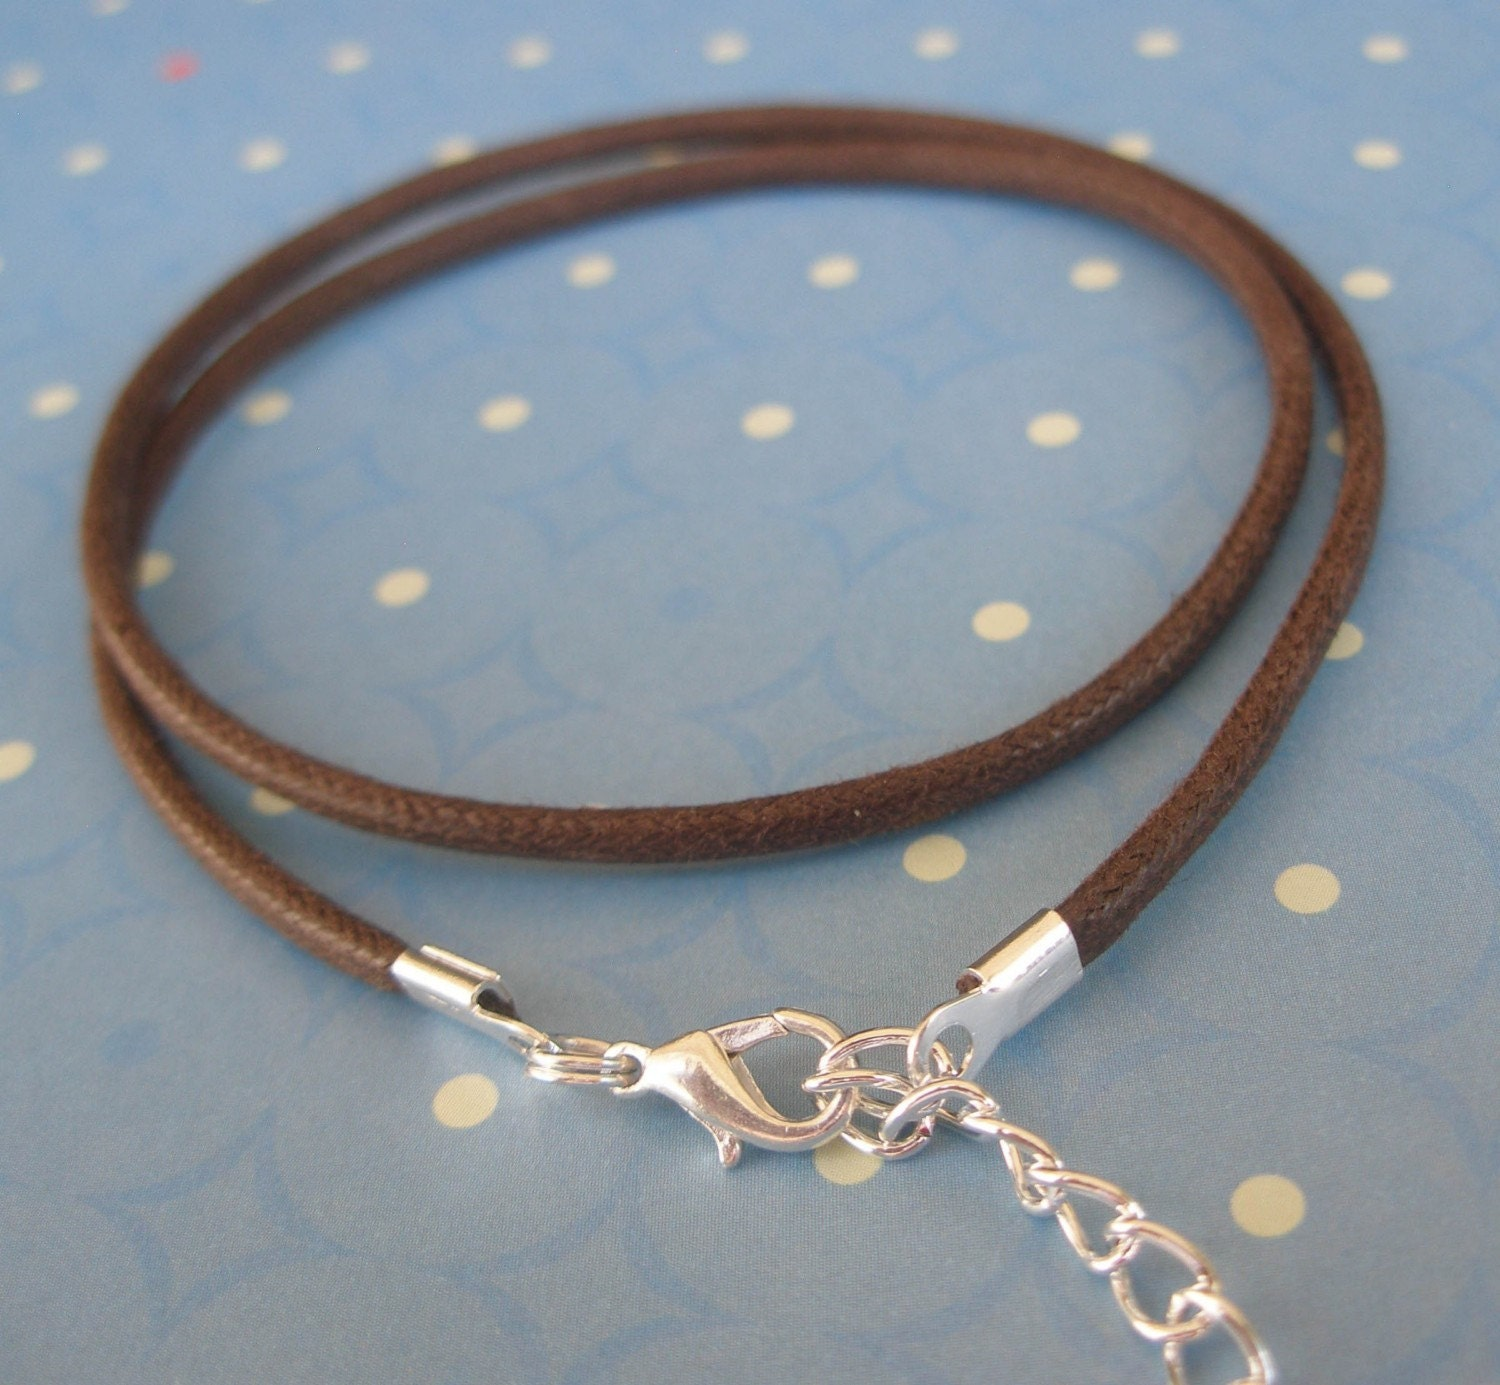 6 - Brown Waxed Cotton Necklace Cords - Heavy Duty Any length - Use with Lg Pendants, Slider beads, Pandora or Lg Bails